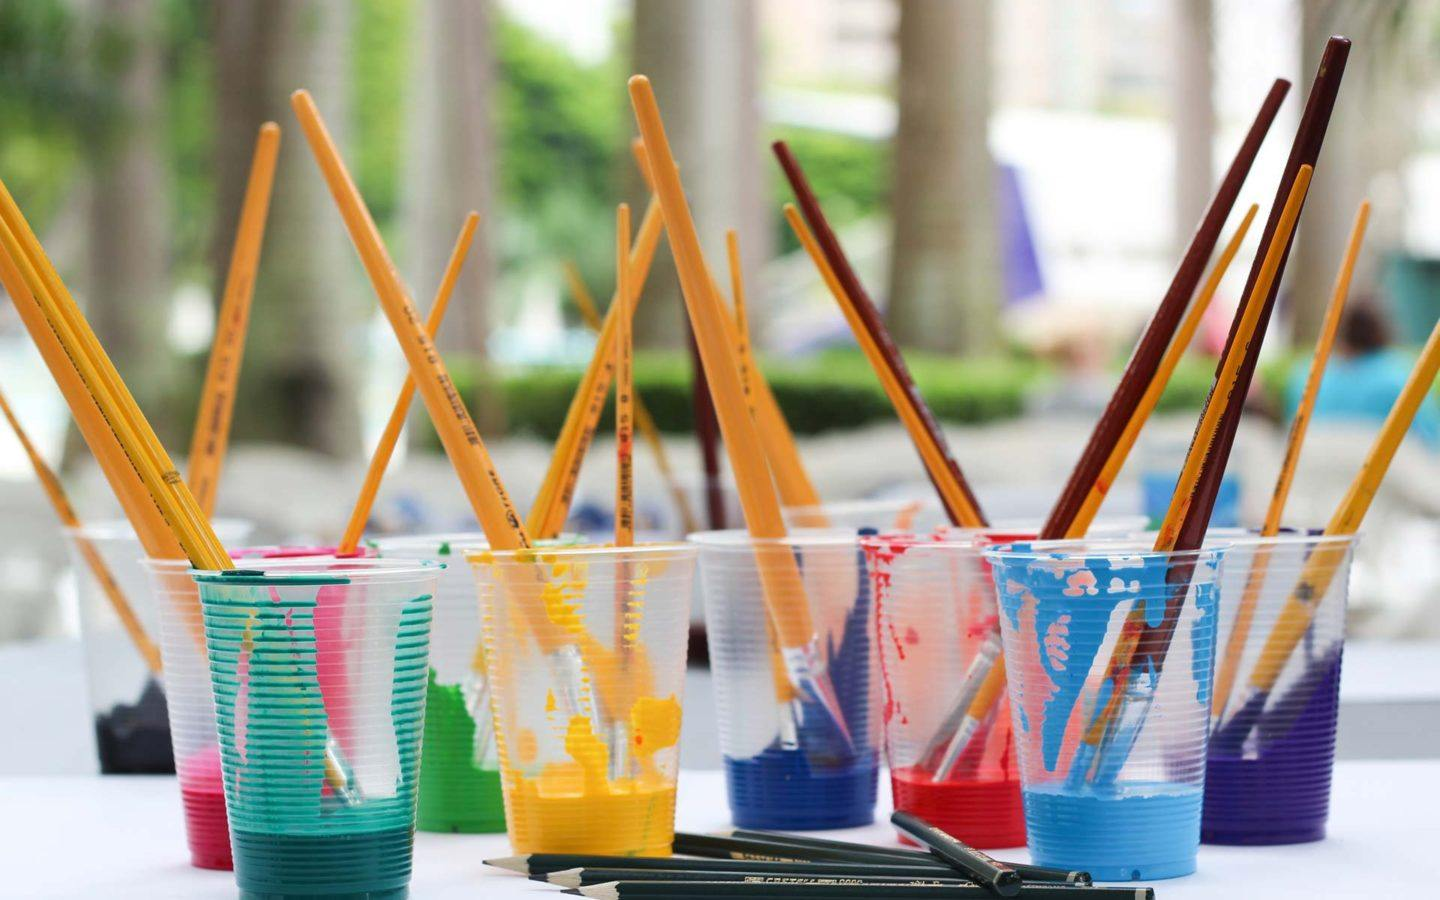 paint brushes sitting in cups filled with different paint colours